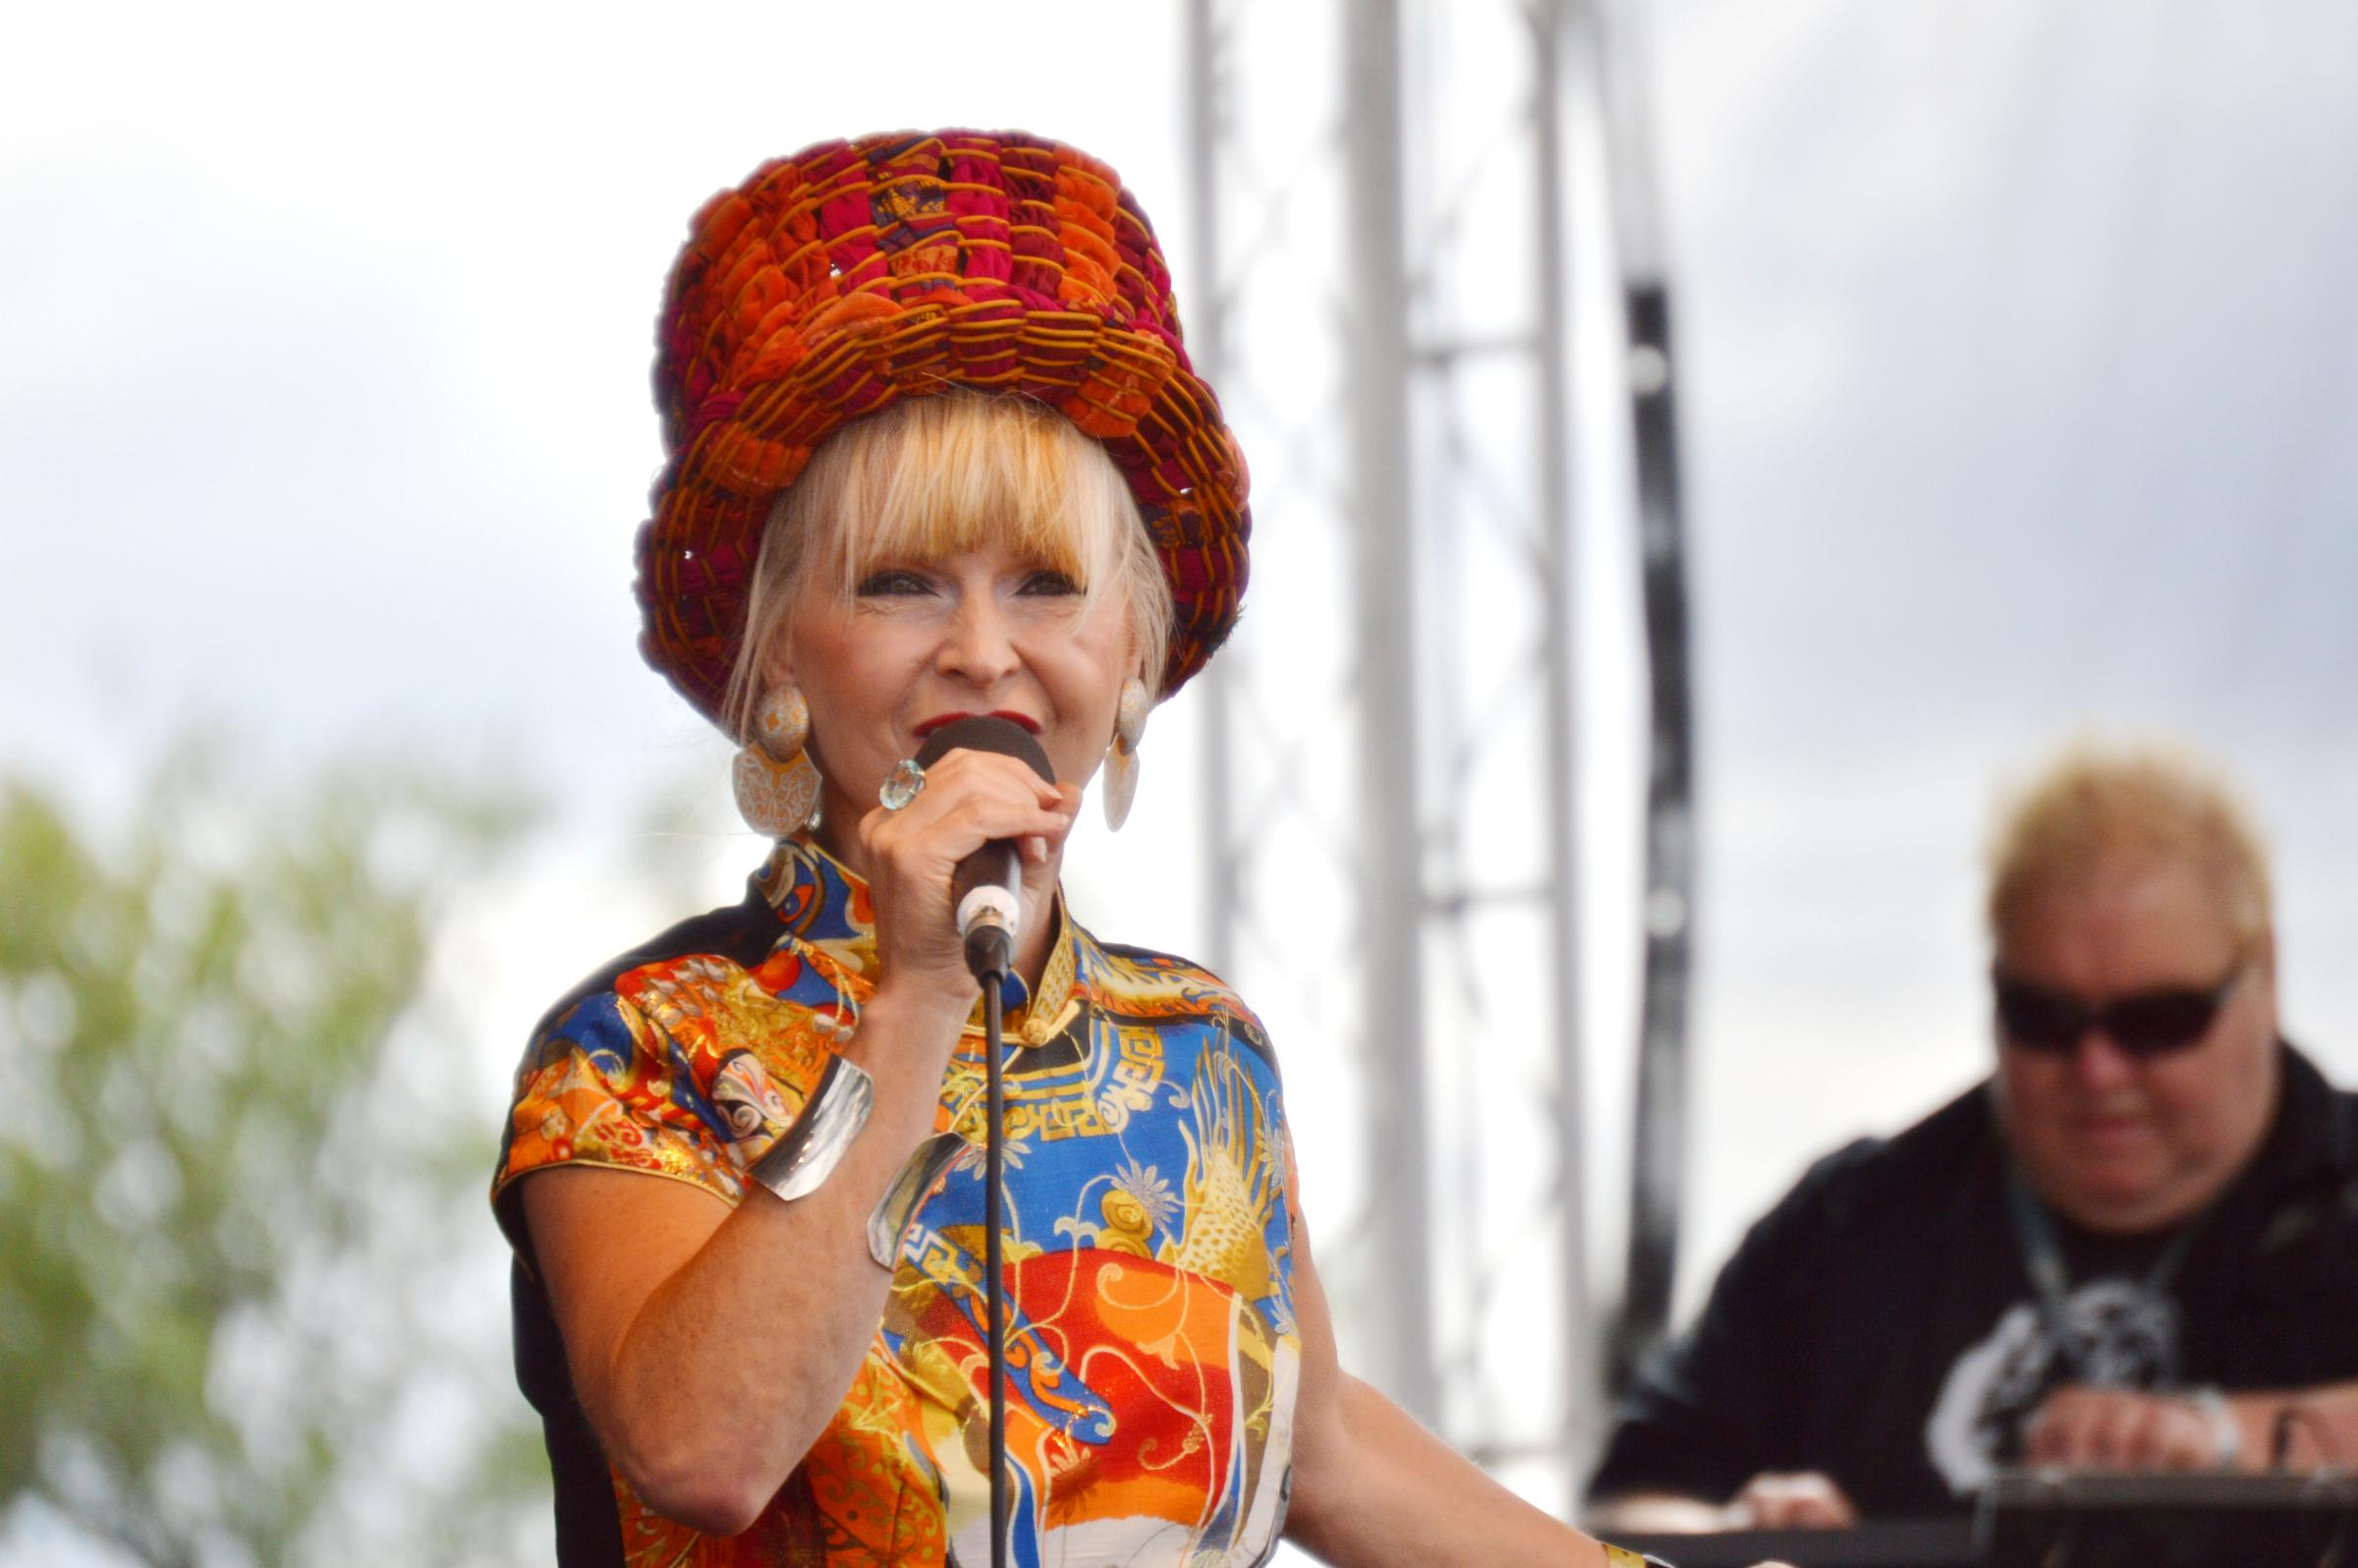 Toyah on stage at the Upton Music Festival (Picture by Liam White)